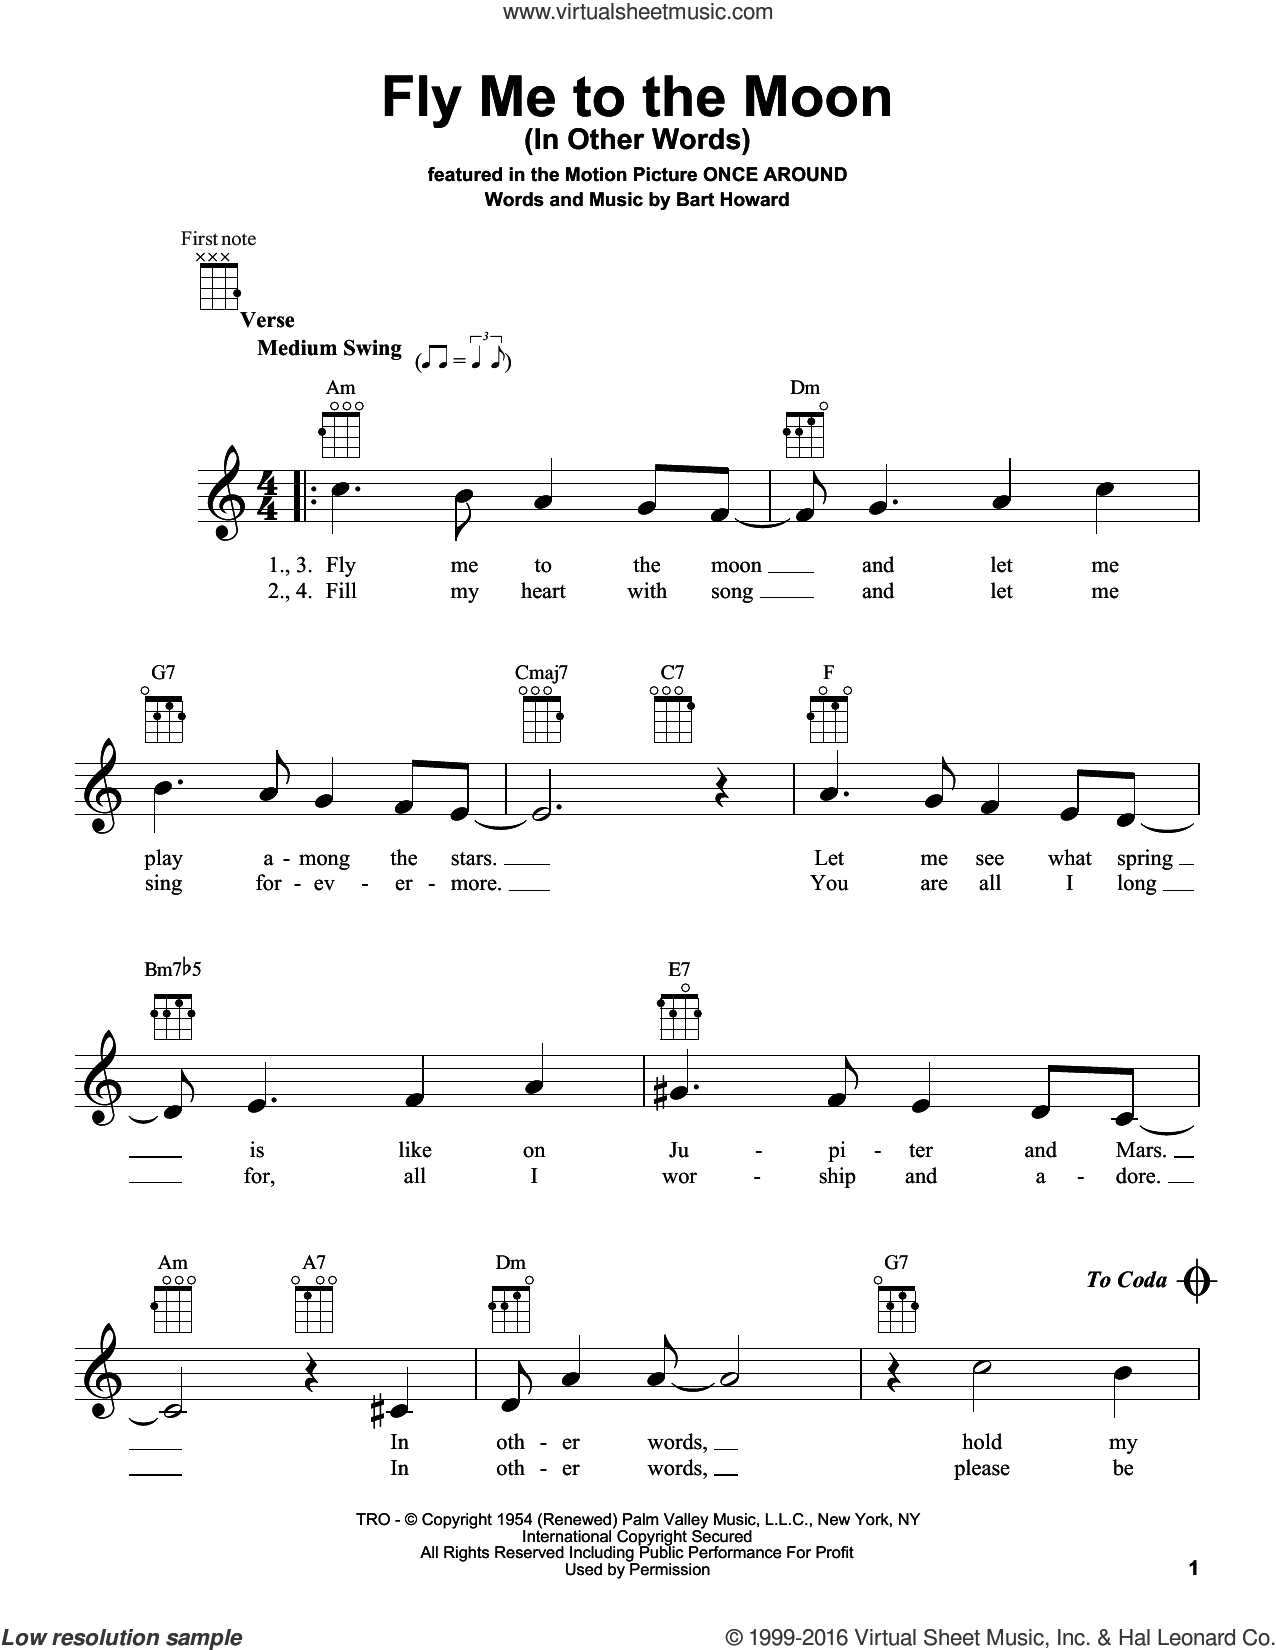 Fly Me To The Moon (In Other Words) sheet music for ukulele by Bobby Darin, Bart Howard and Tony Bennett, intermediate skill level